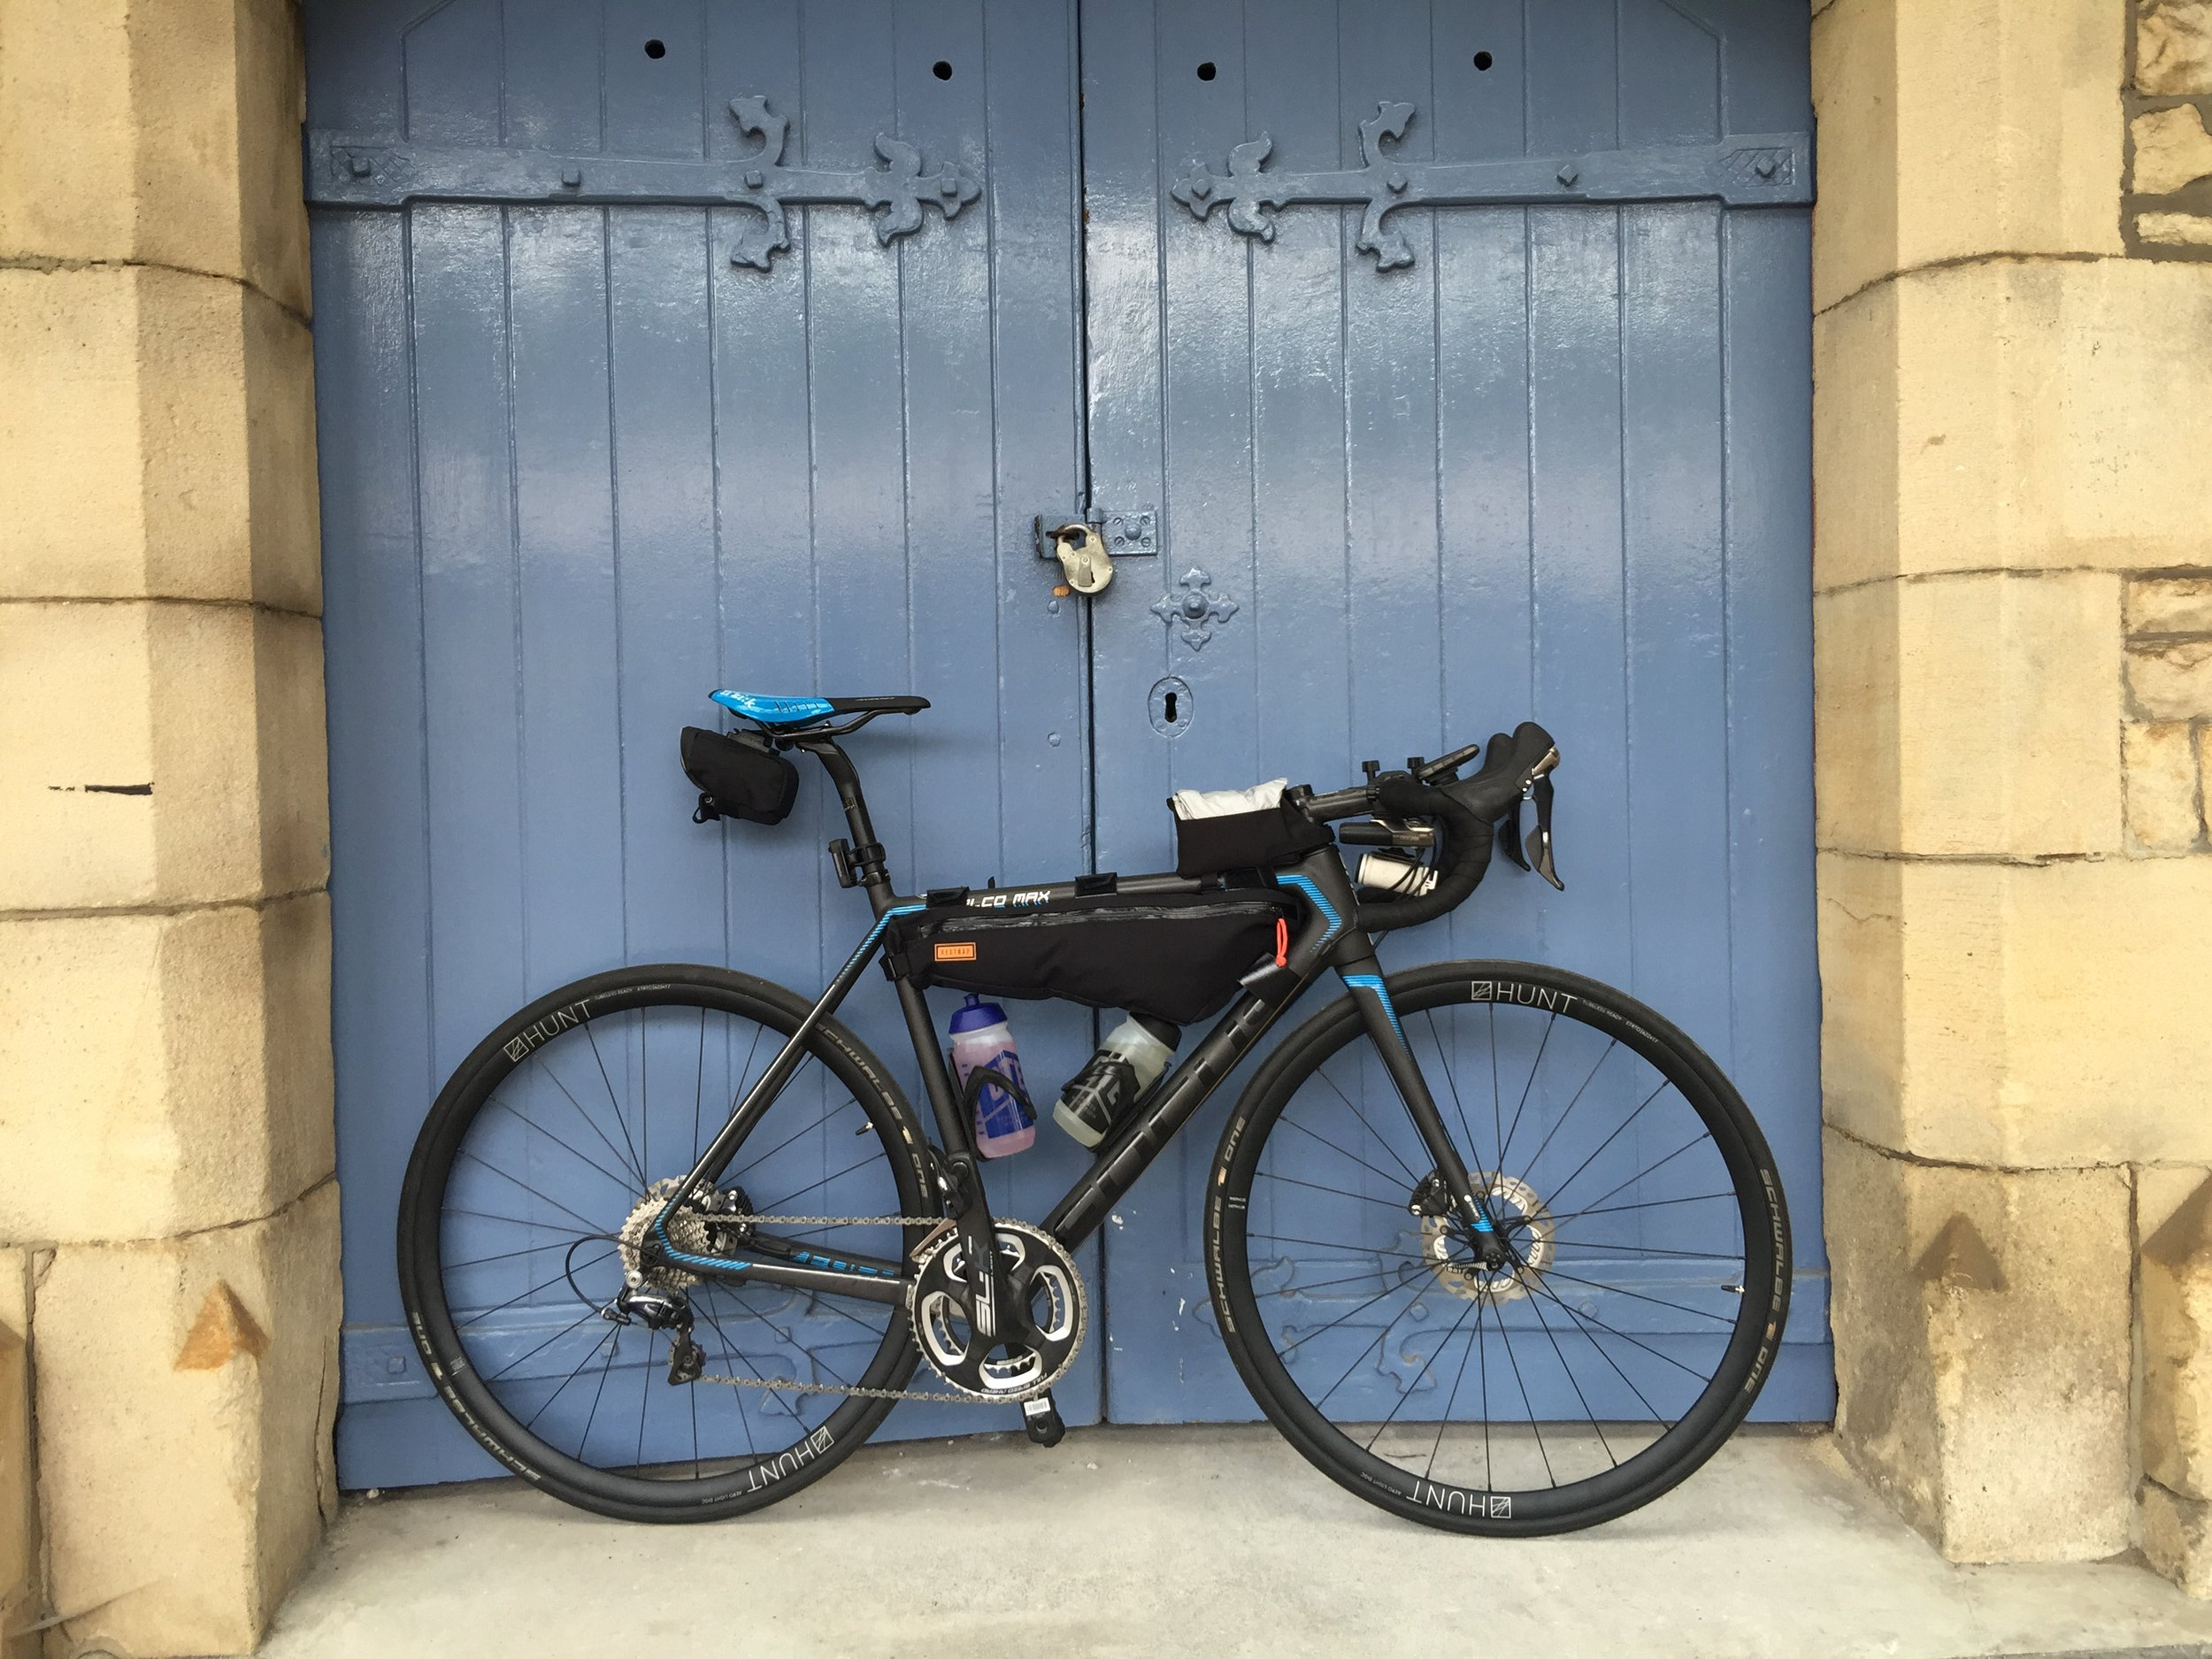 The chosen steed for the trip was the Focus Izalco Max Disc, equipped with a set of Hunt Aero Light Disc Wheels. Restrap have provided the frame bag and Tom Tom the Bandit Camera. The bike is equipped with 11 speed Shimano Dura Ace with an FSA SLK Lightweight Crank and Fizik Antares saddle.